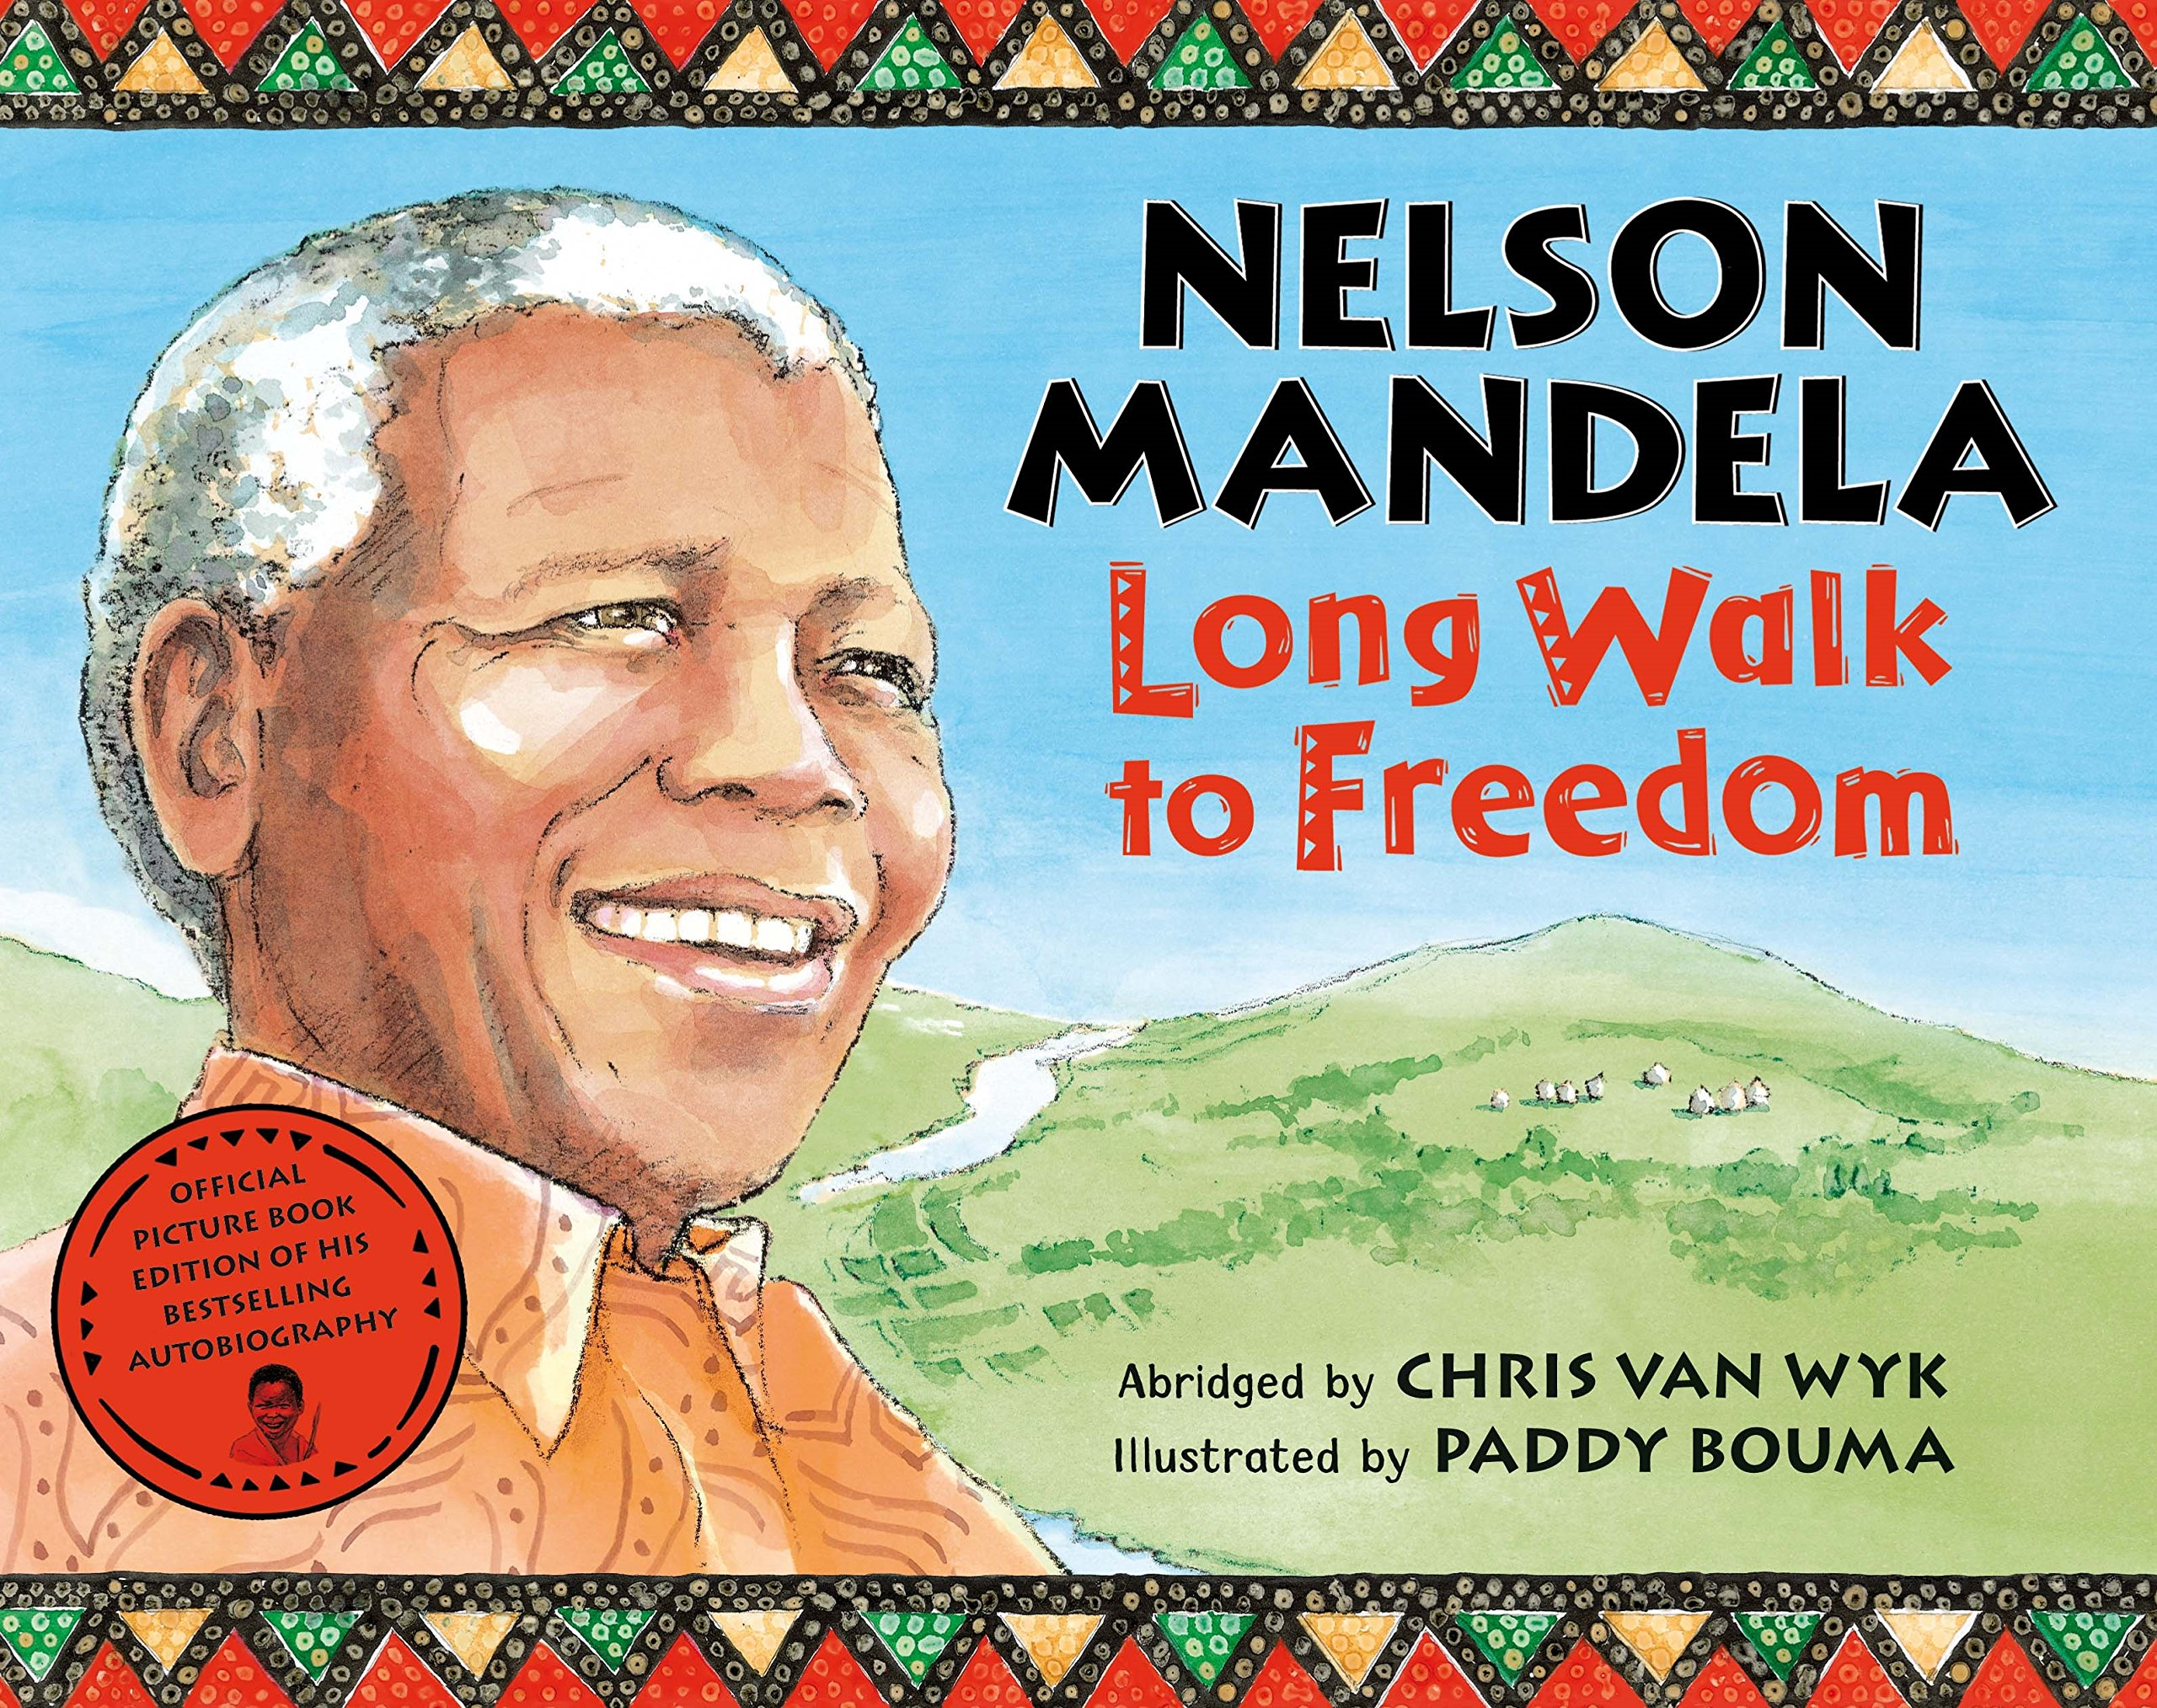 The Long Walk to Freedom (children's illustrated version) by Nelson Mandela